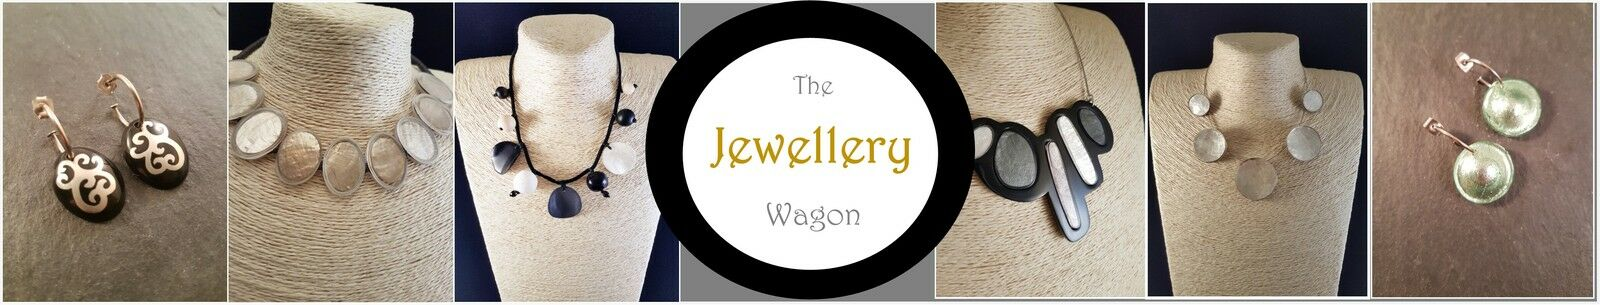 The Jewellery Wagon